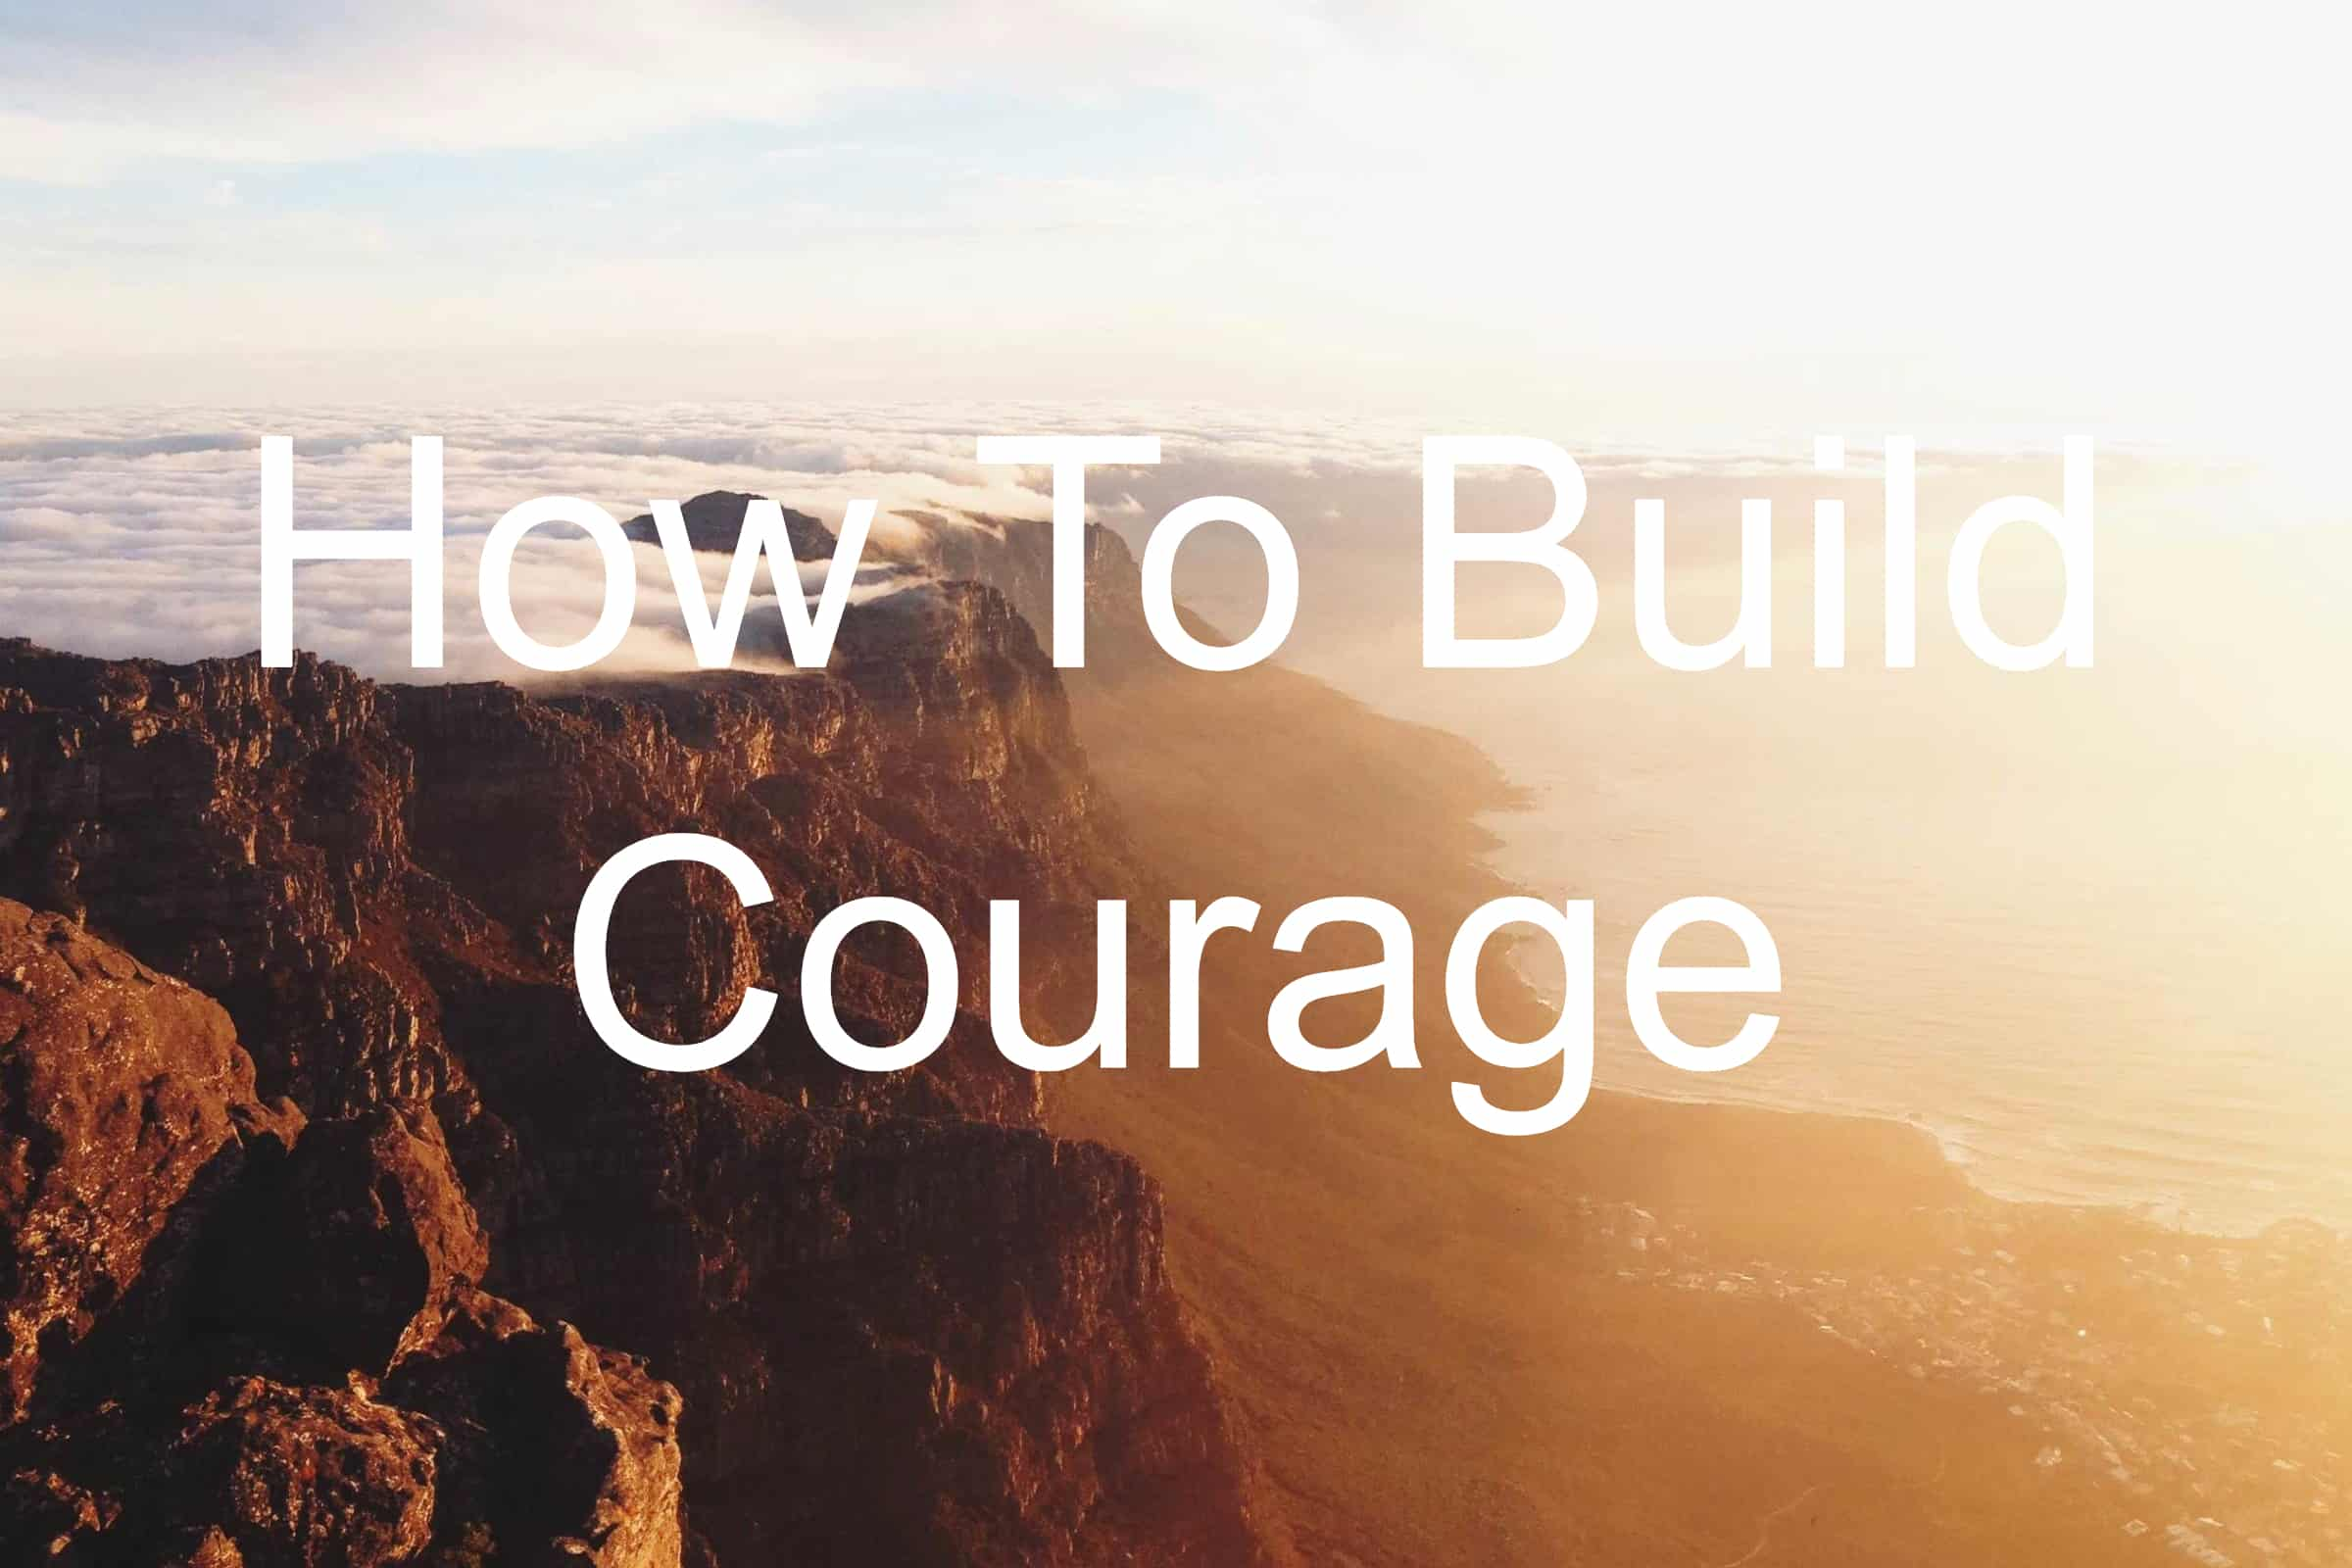 Learn how to build your courage